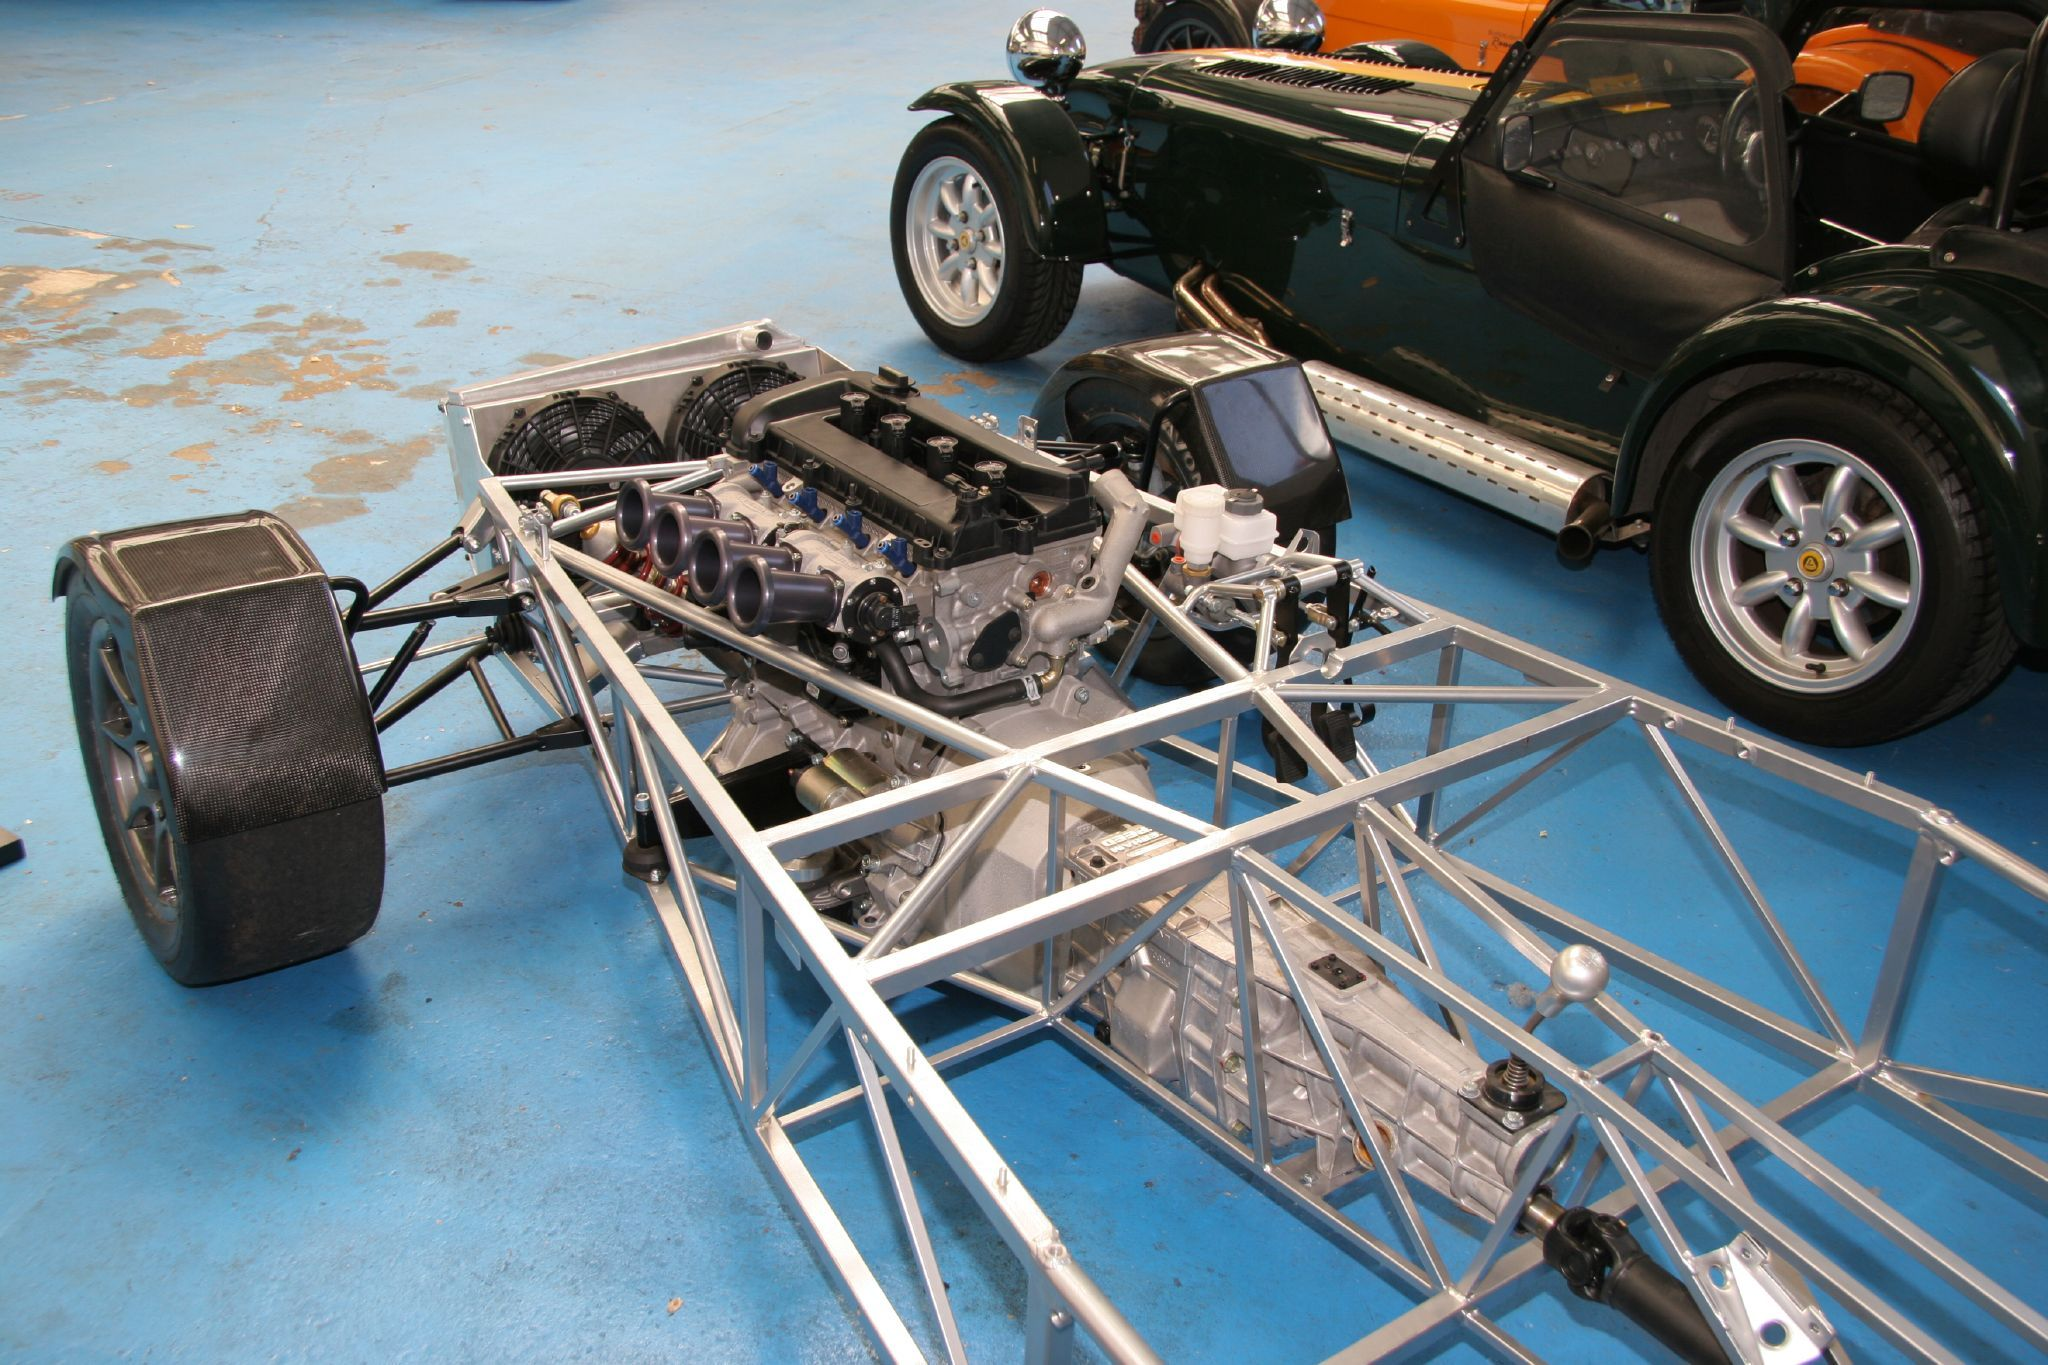 locost kit car - Google Search | sevenesque | Kit cars